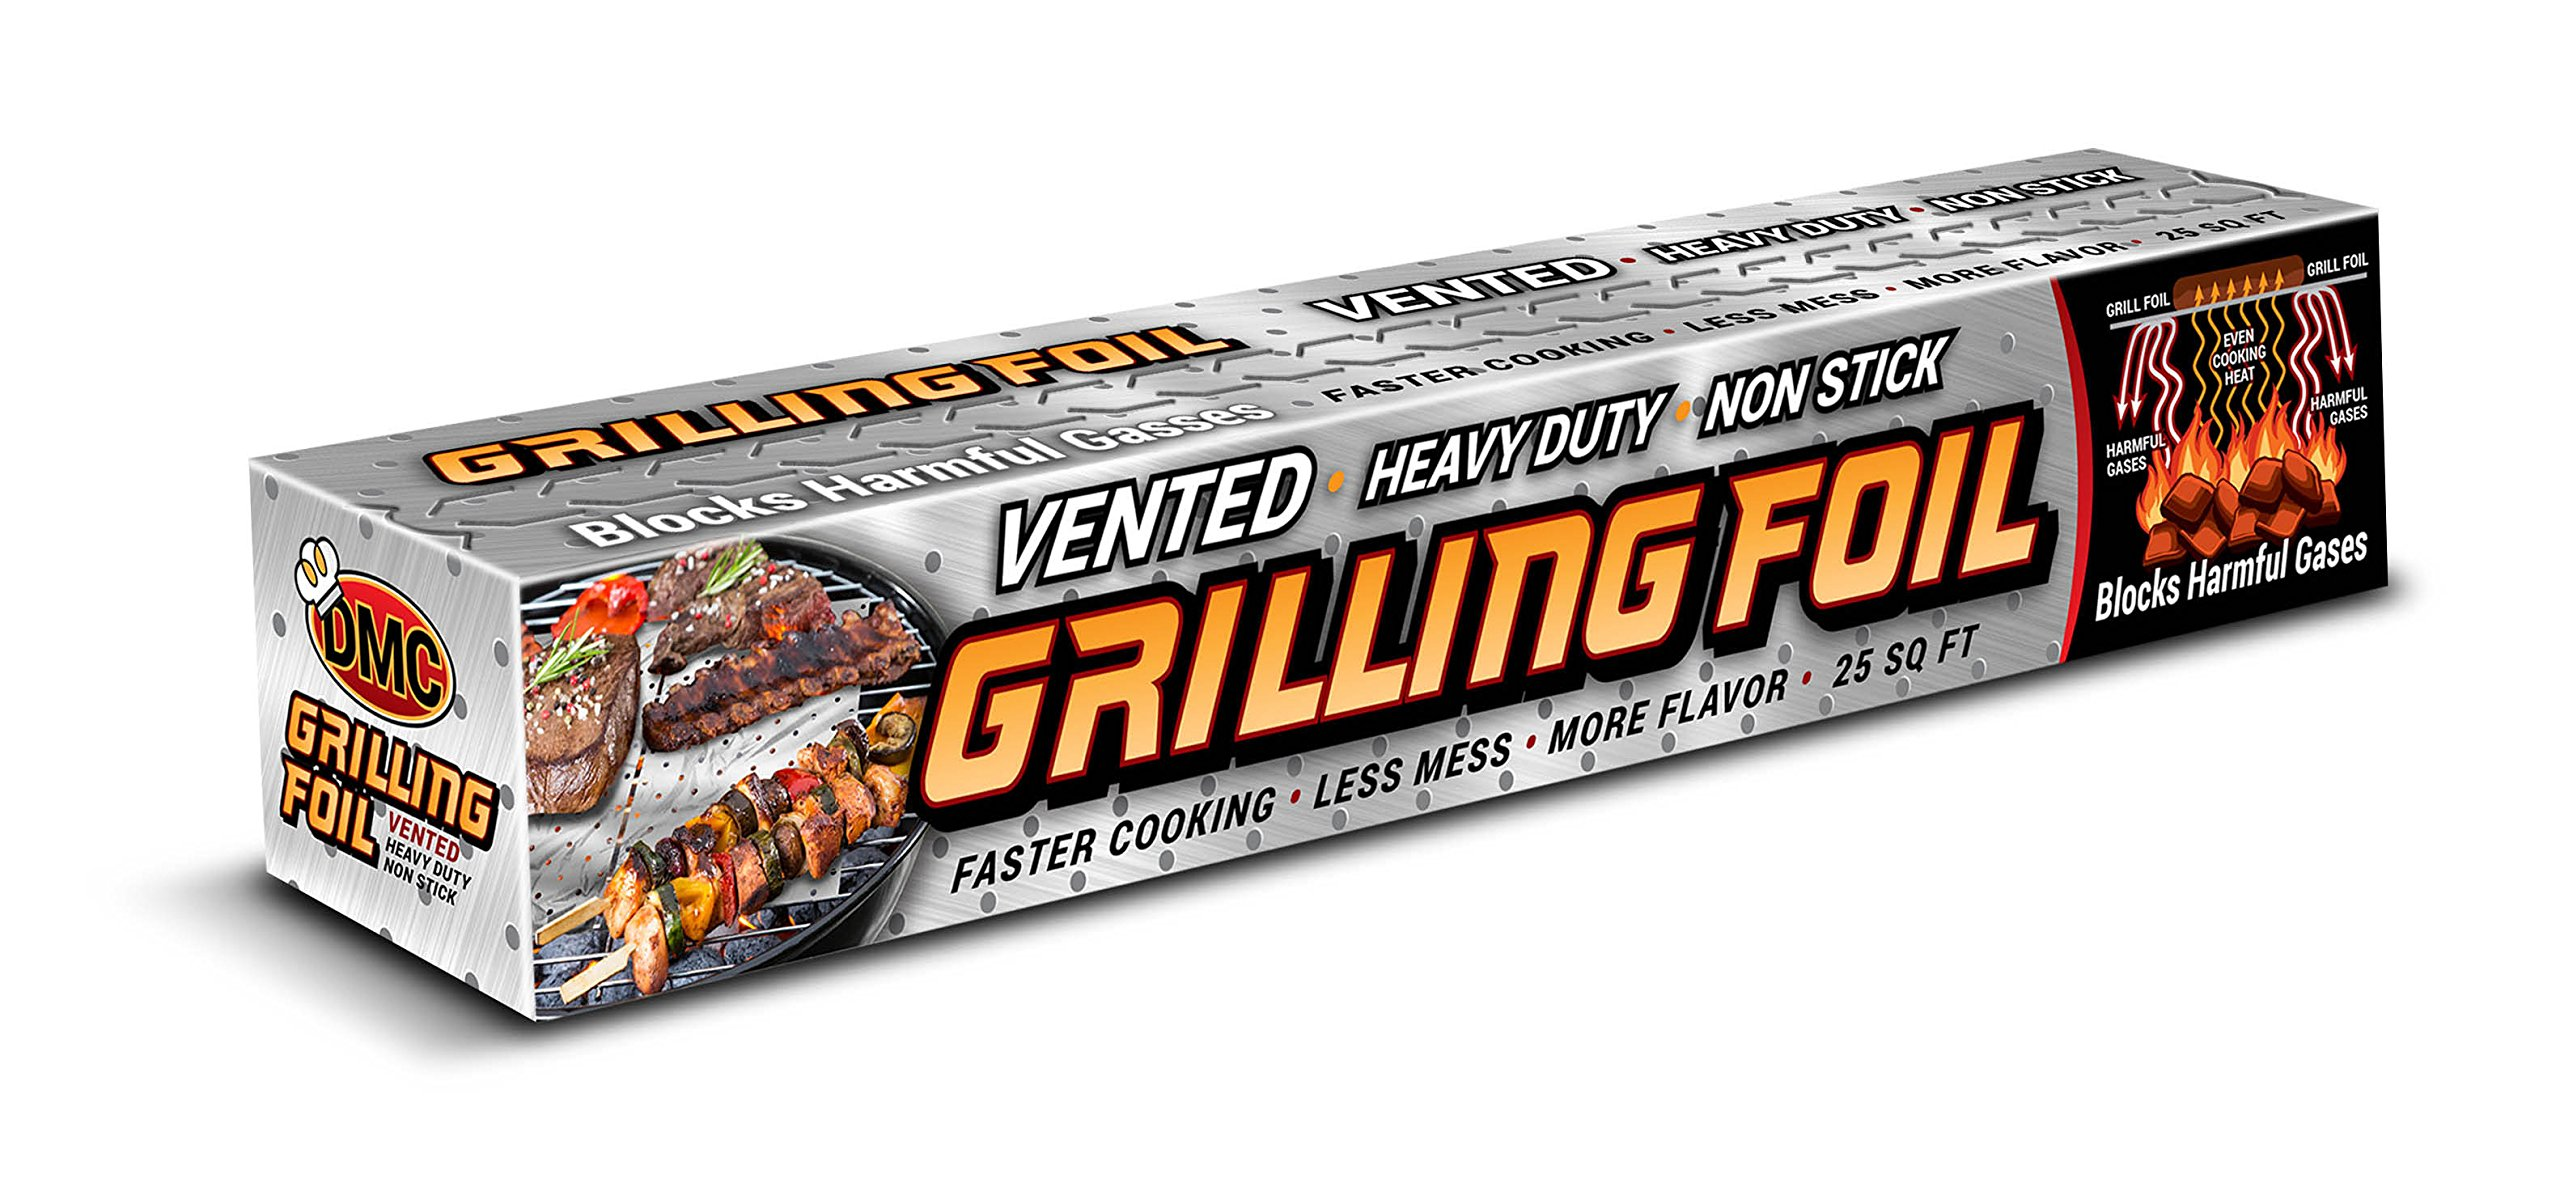 BBQ Grilling Accessories Heavy Duty Vented Holes Non Stick Aluminum Grilling Foil 25 SQFT by DMC Grilling Foil